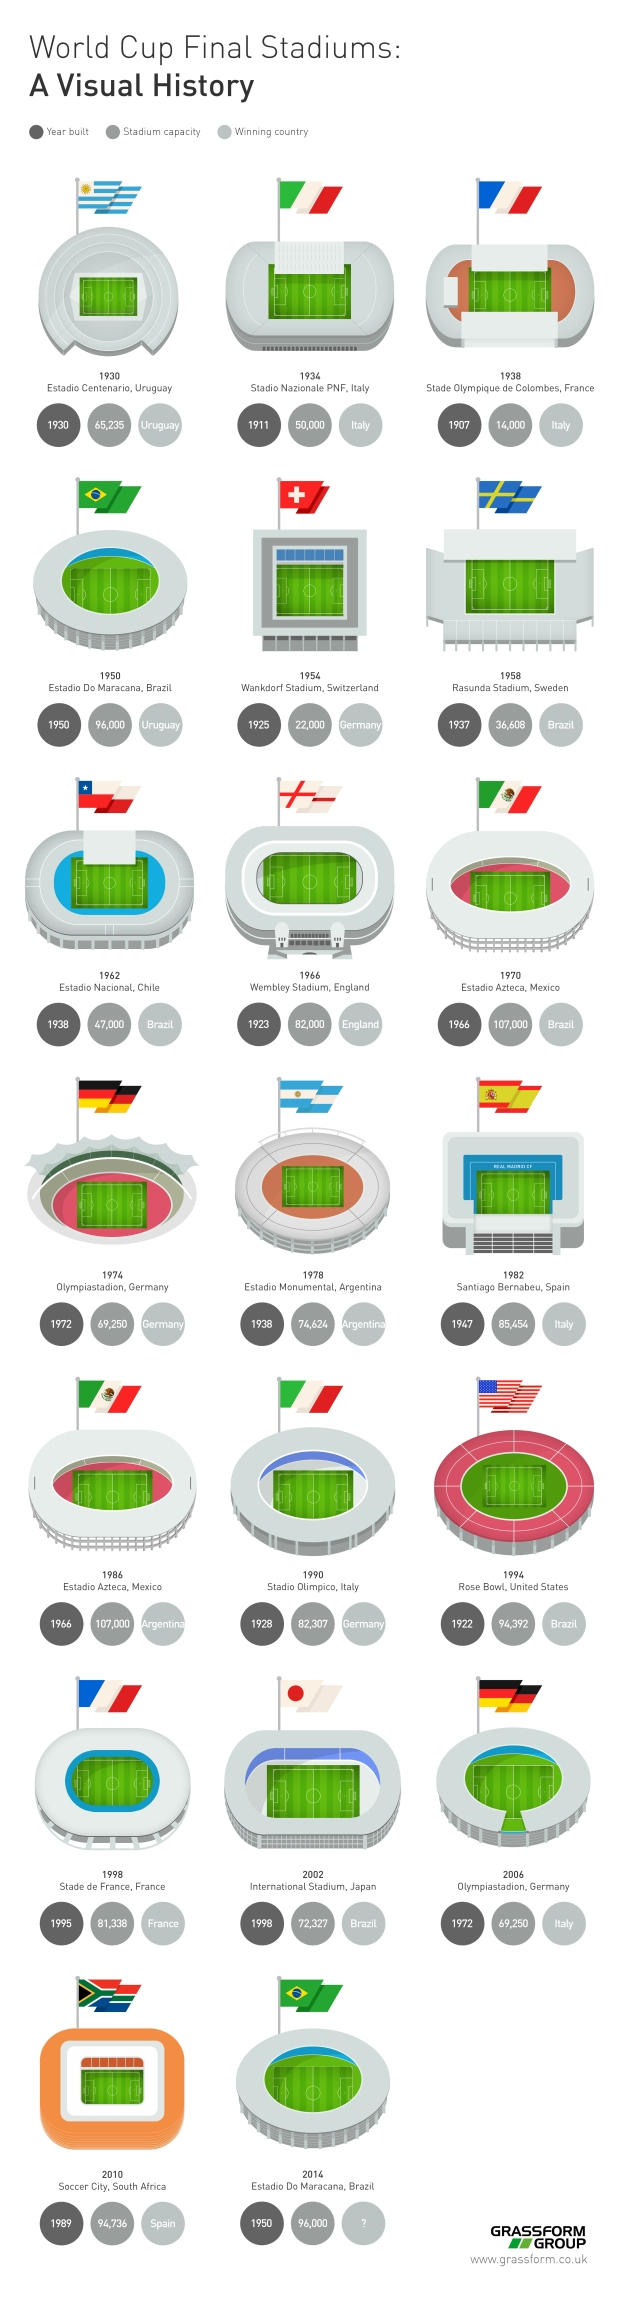 World-Cup-Final-Stadiums-Visual-History-Final